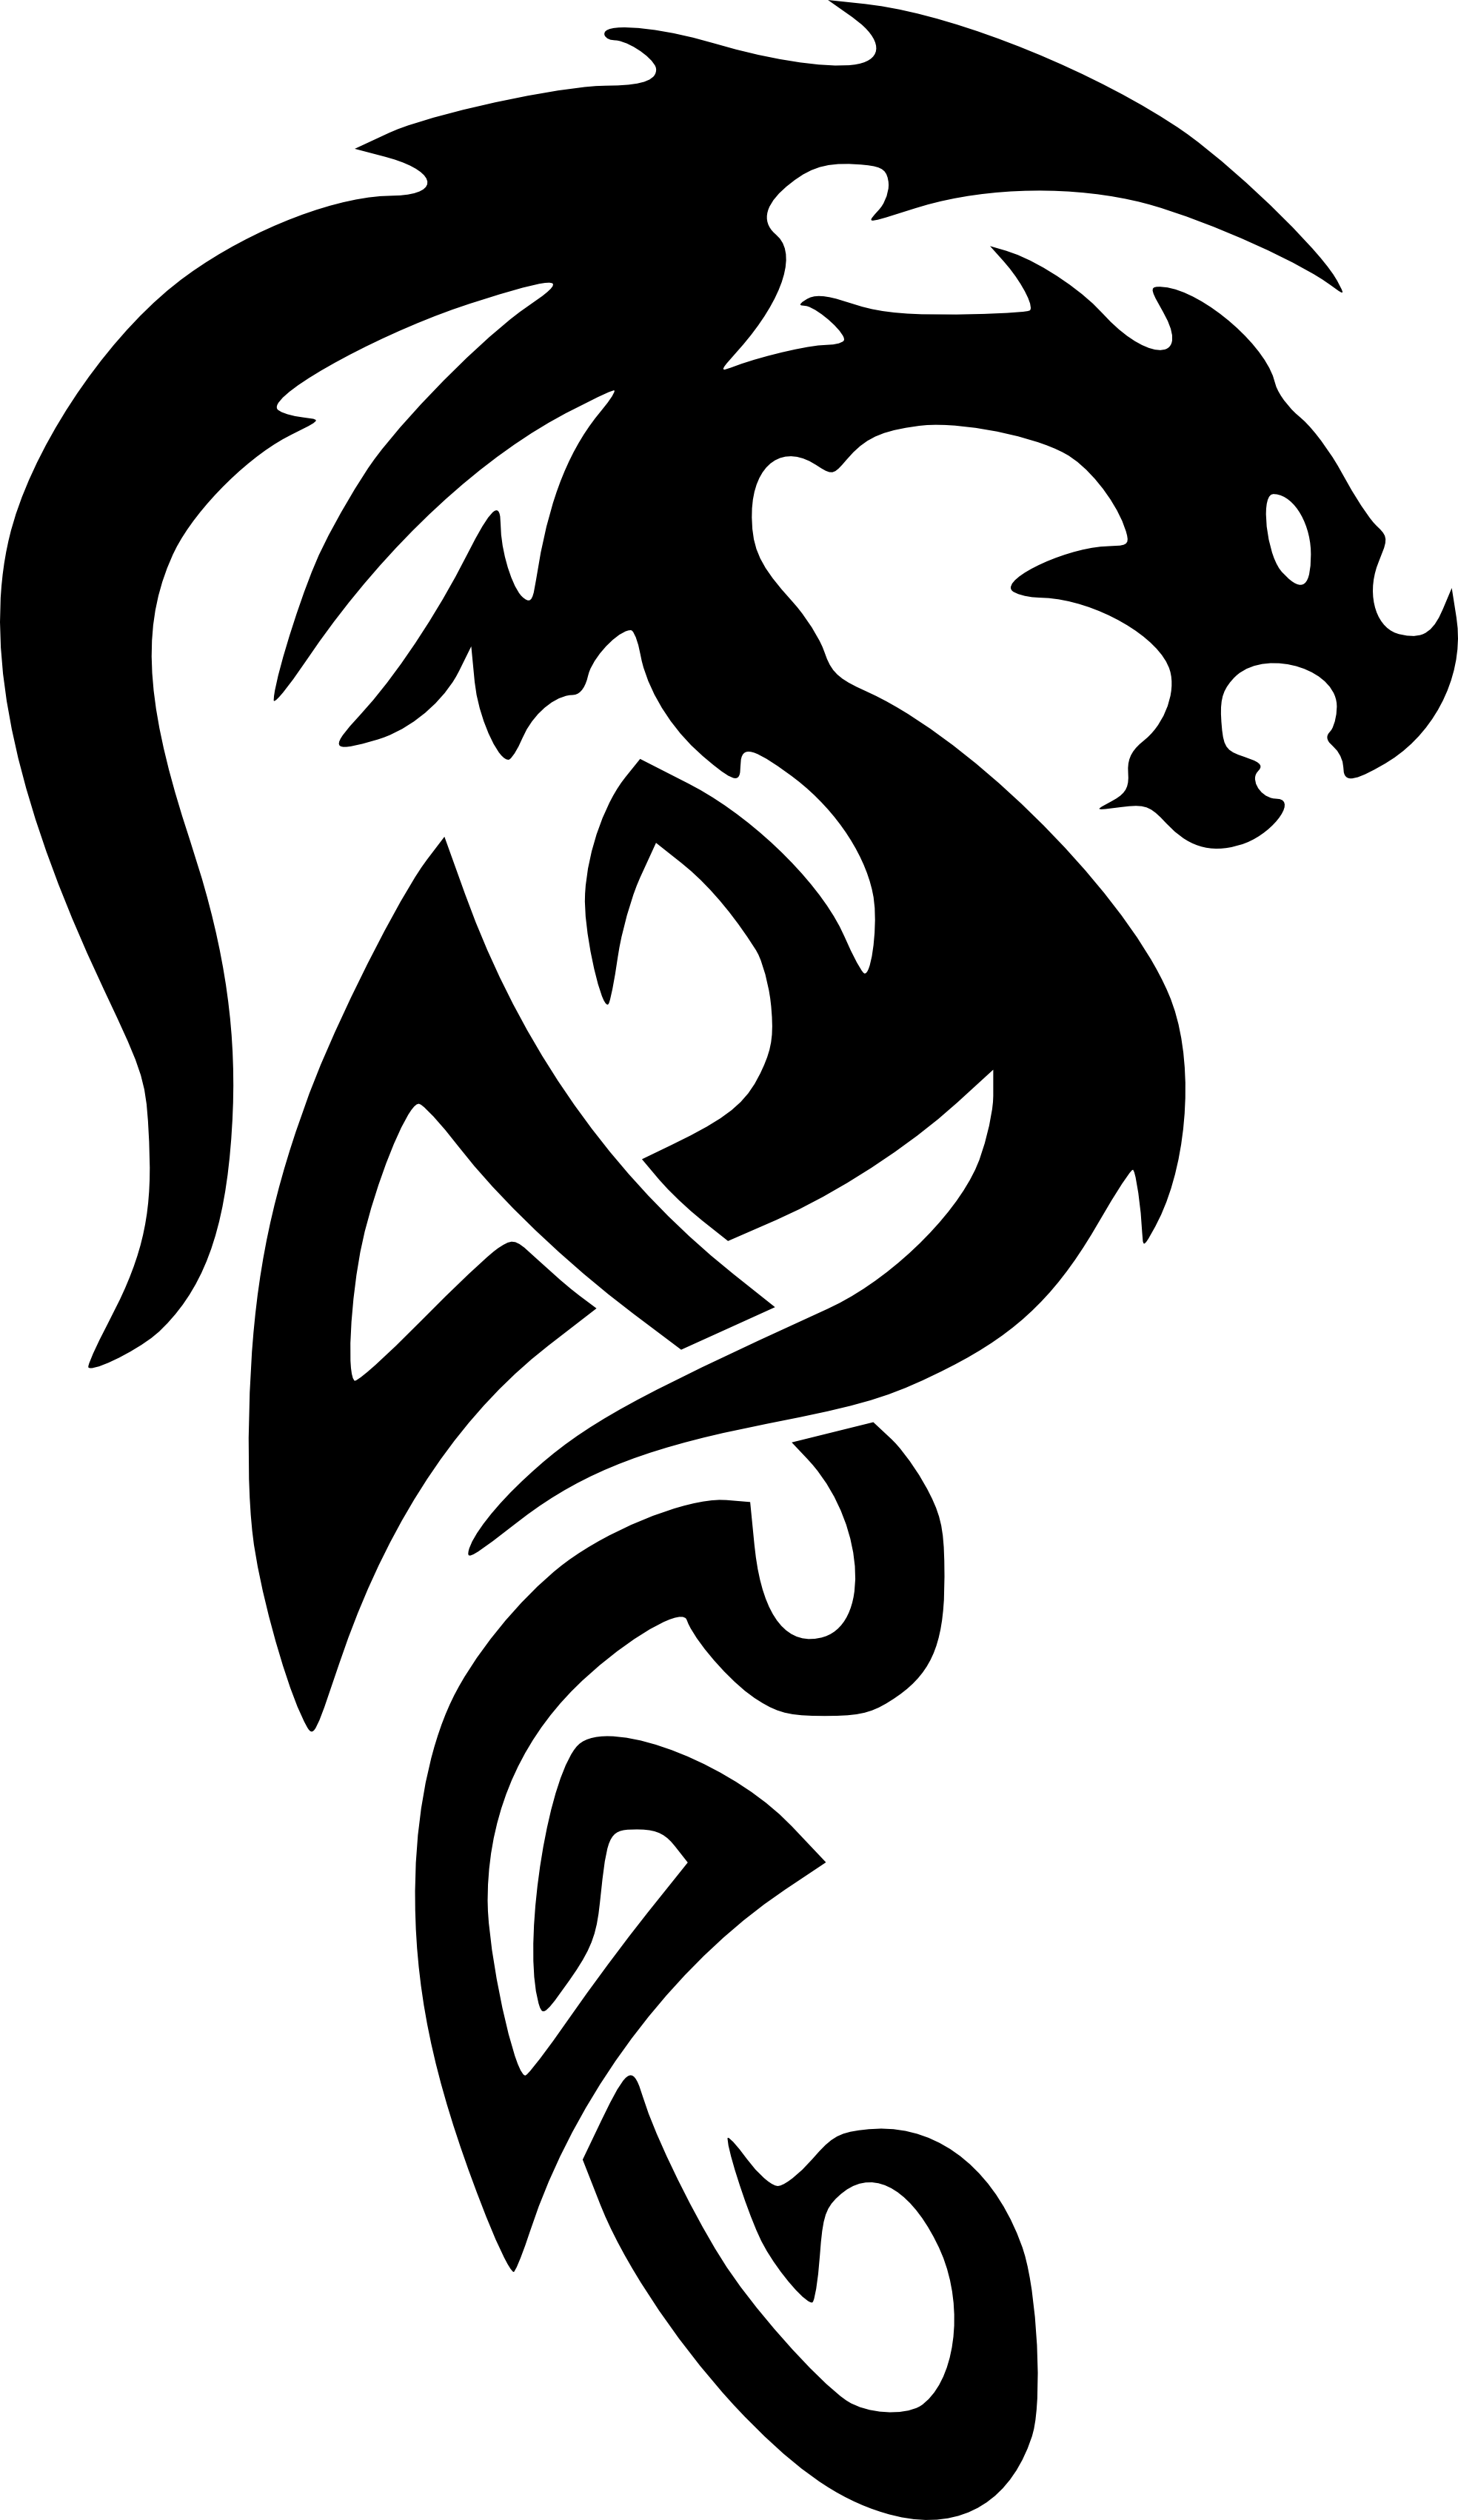 Dragon Tattoos Png image #19390 - Dragon Tattoos PNG